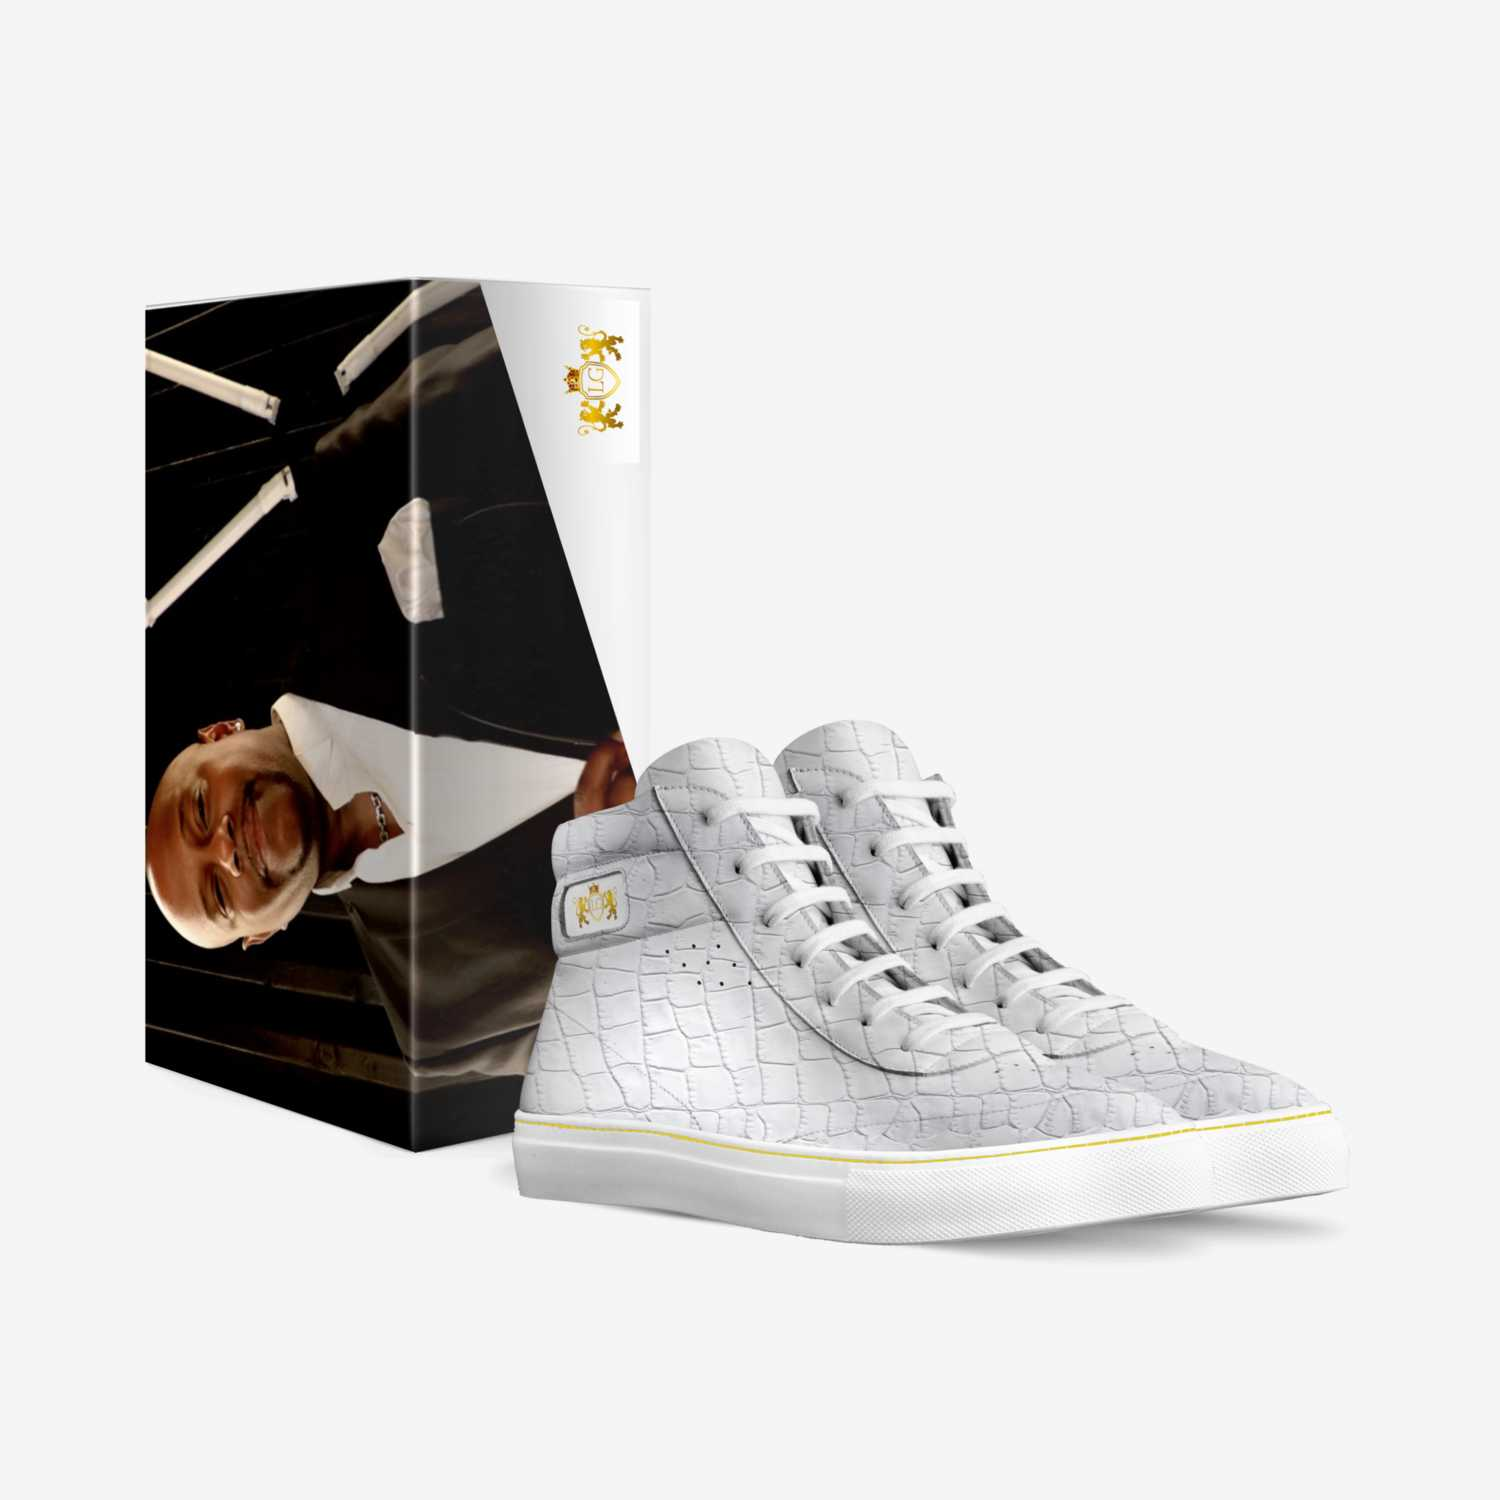 LG 2 custom made in Italy shoes by Legrand Whitt | Box view